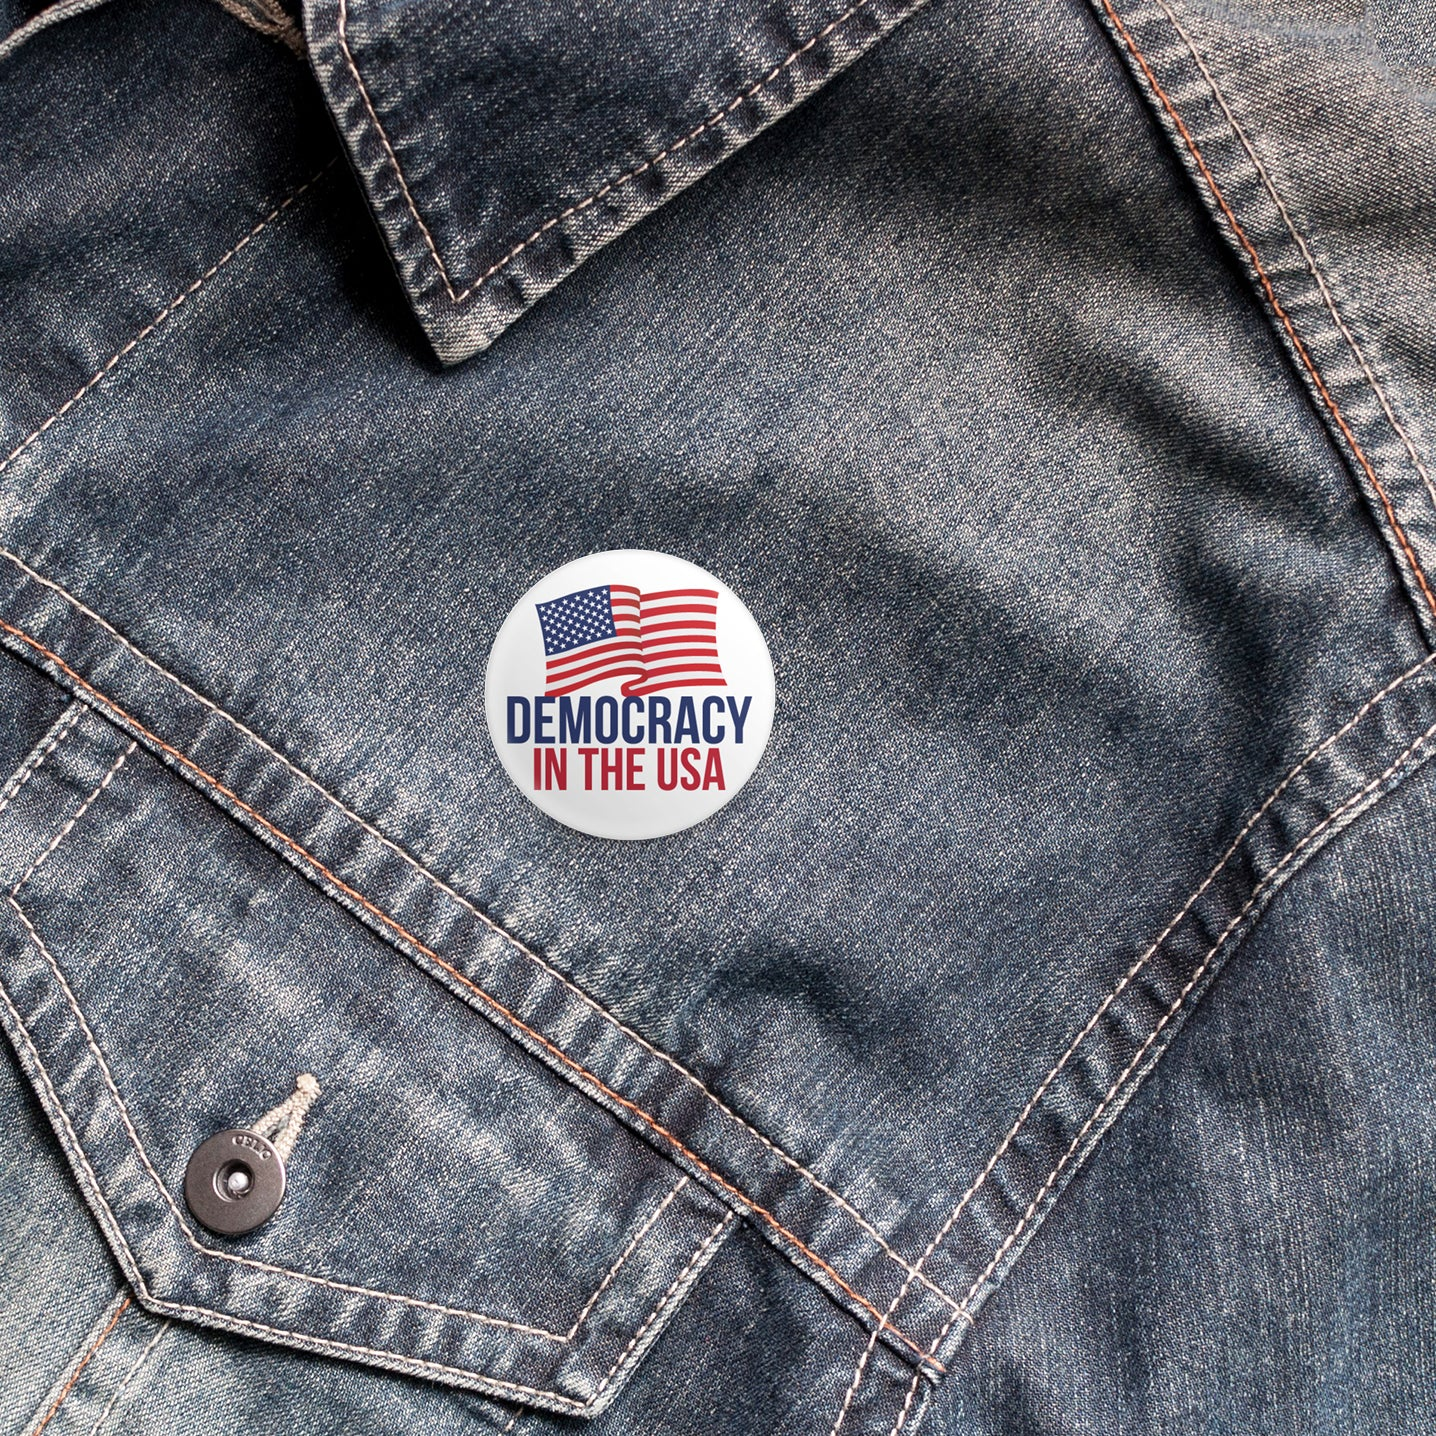 democracy in the usa button on denim jacket